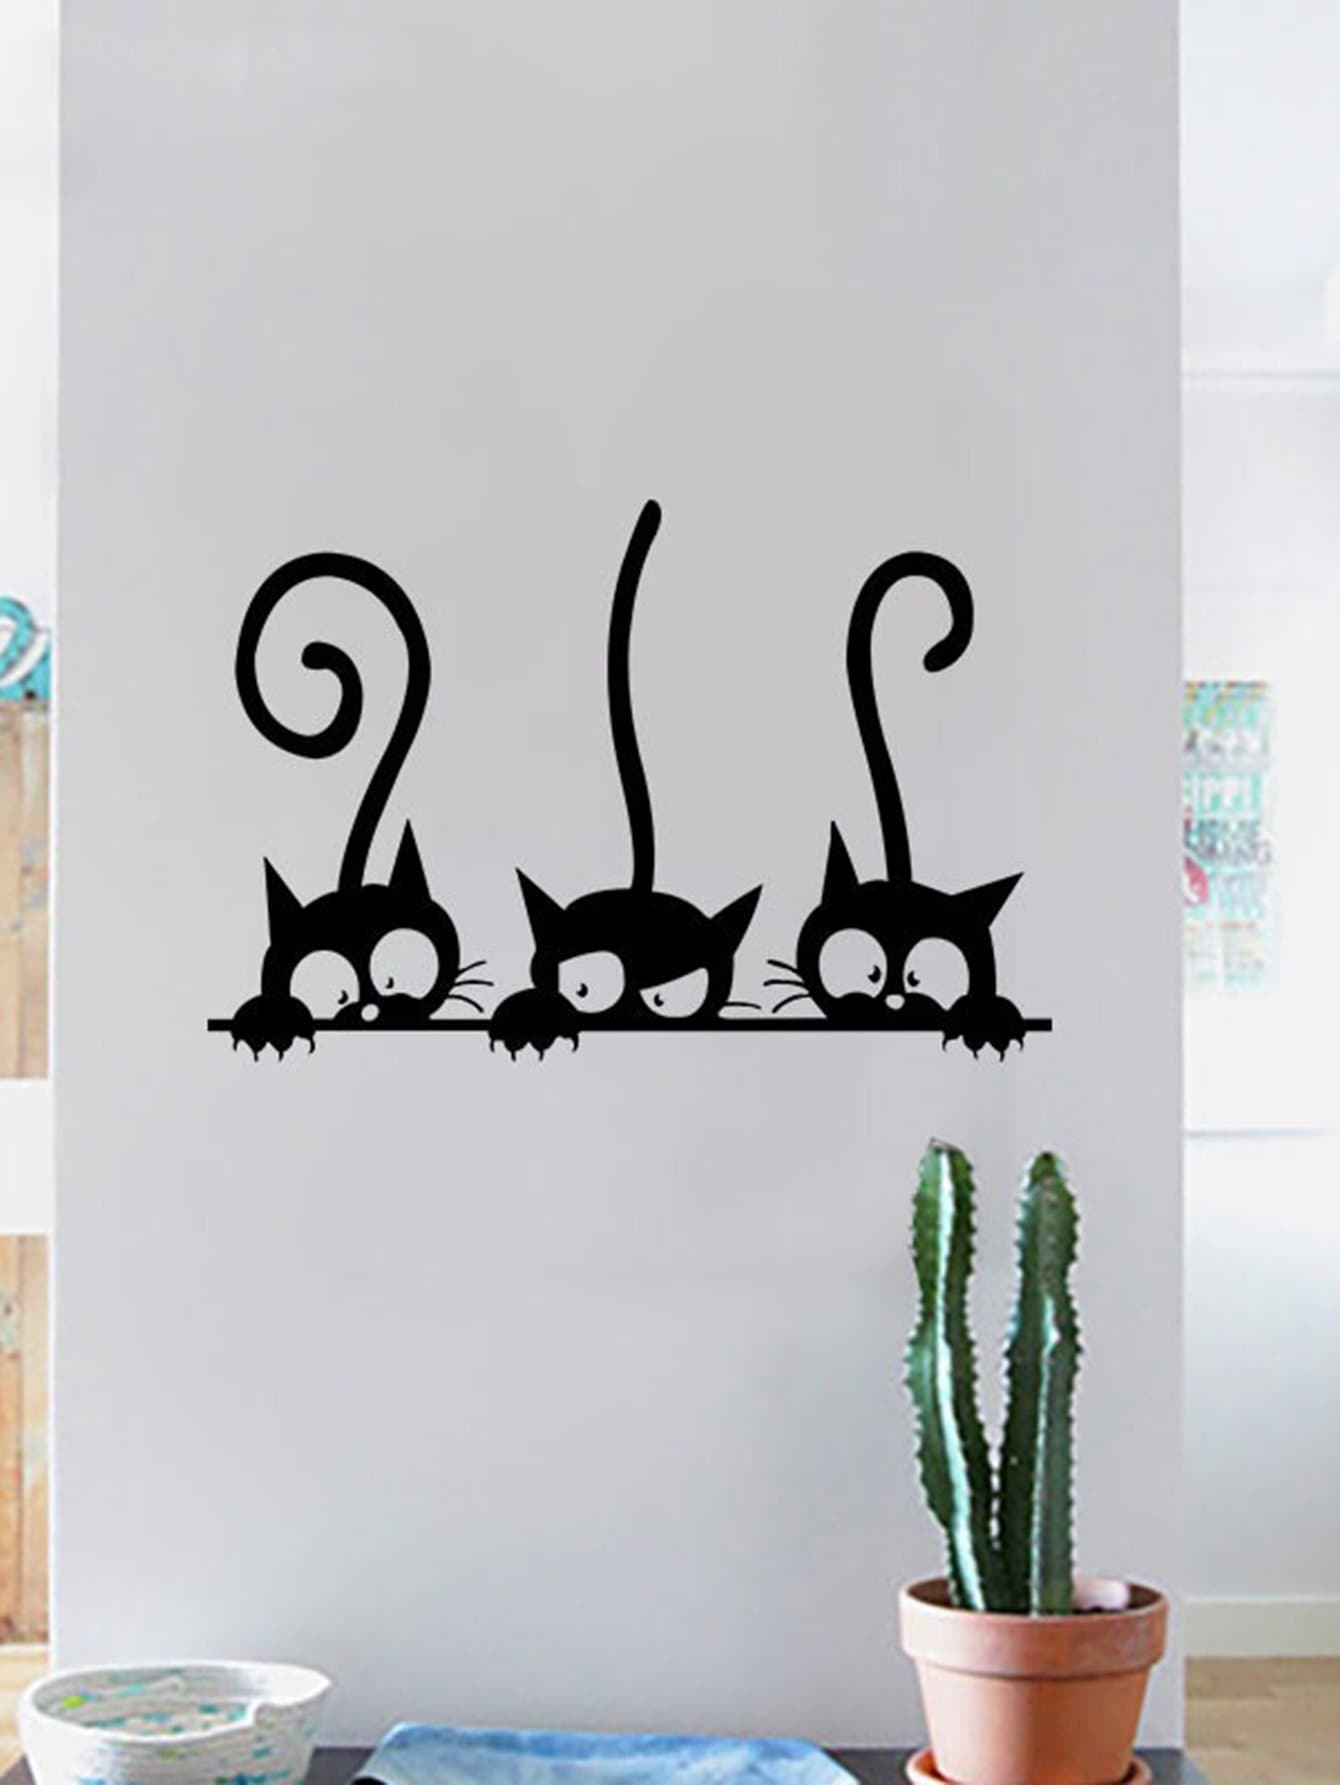 Adhesivo Decorativo Para Paredes Adhesivo Decorativo Para Pared Con Gatos Spanish Shein